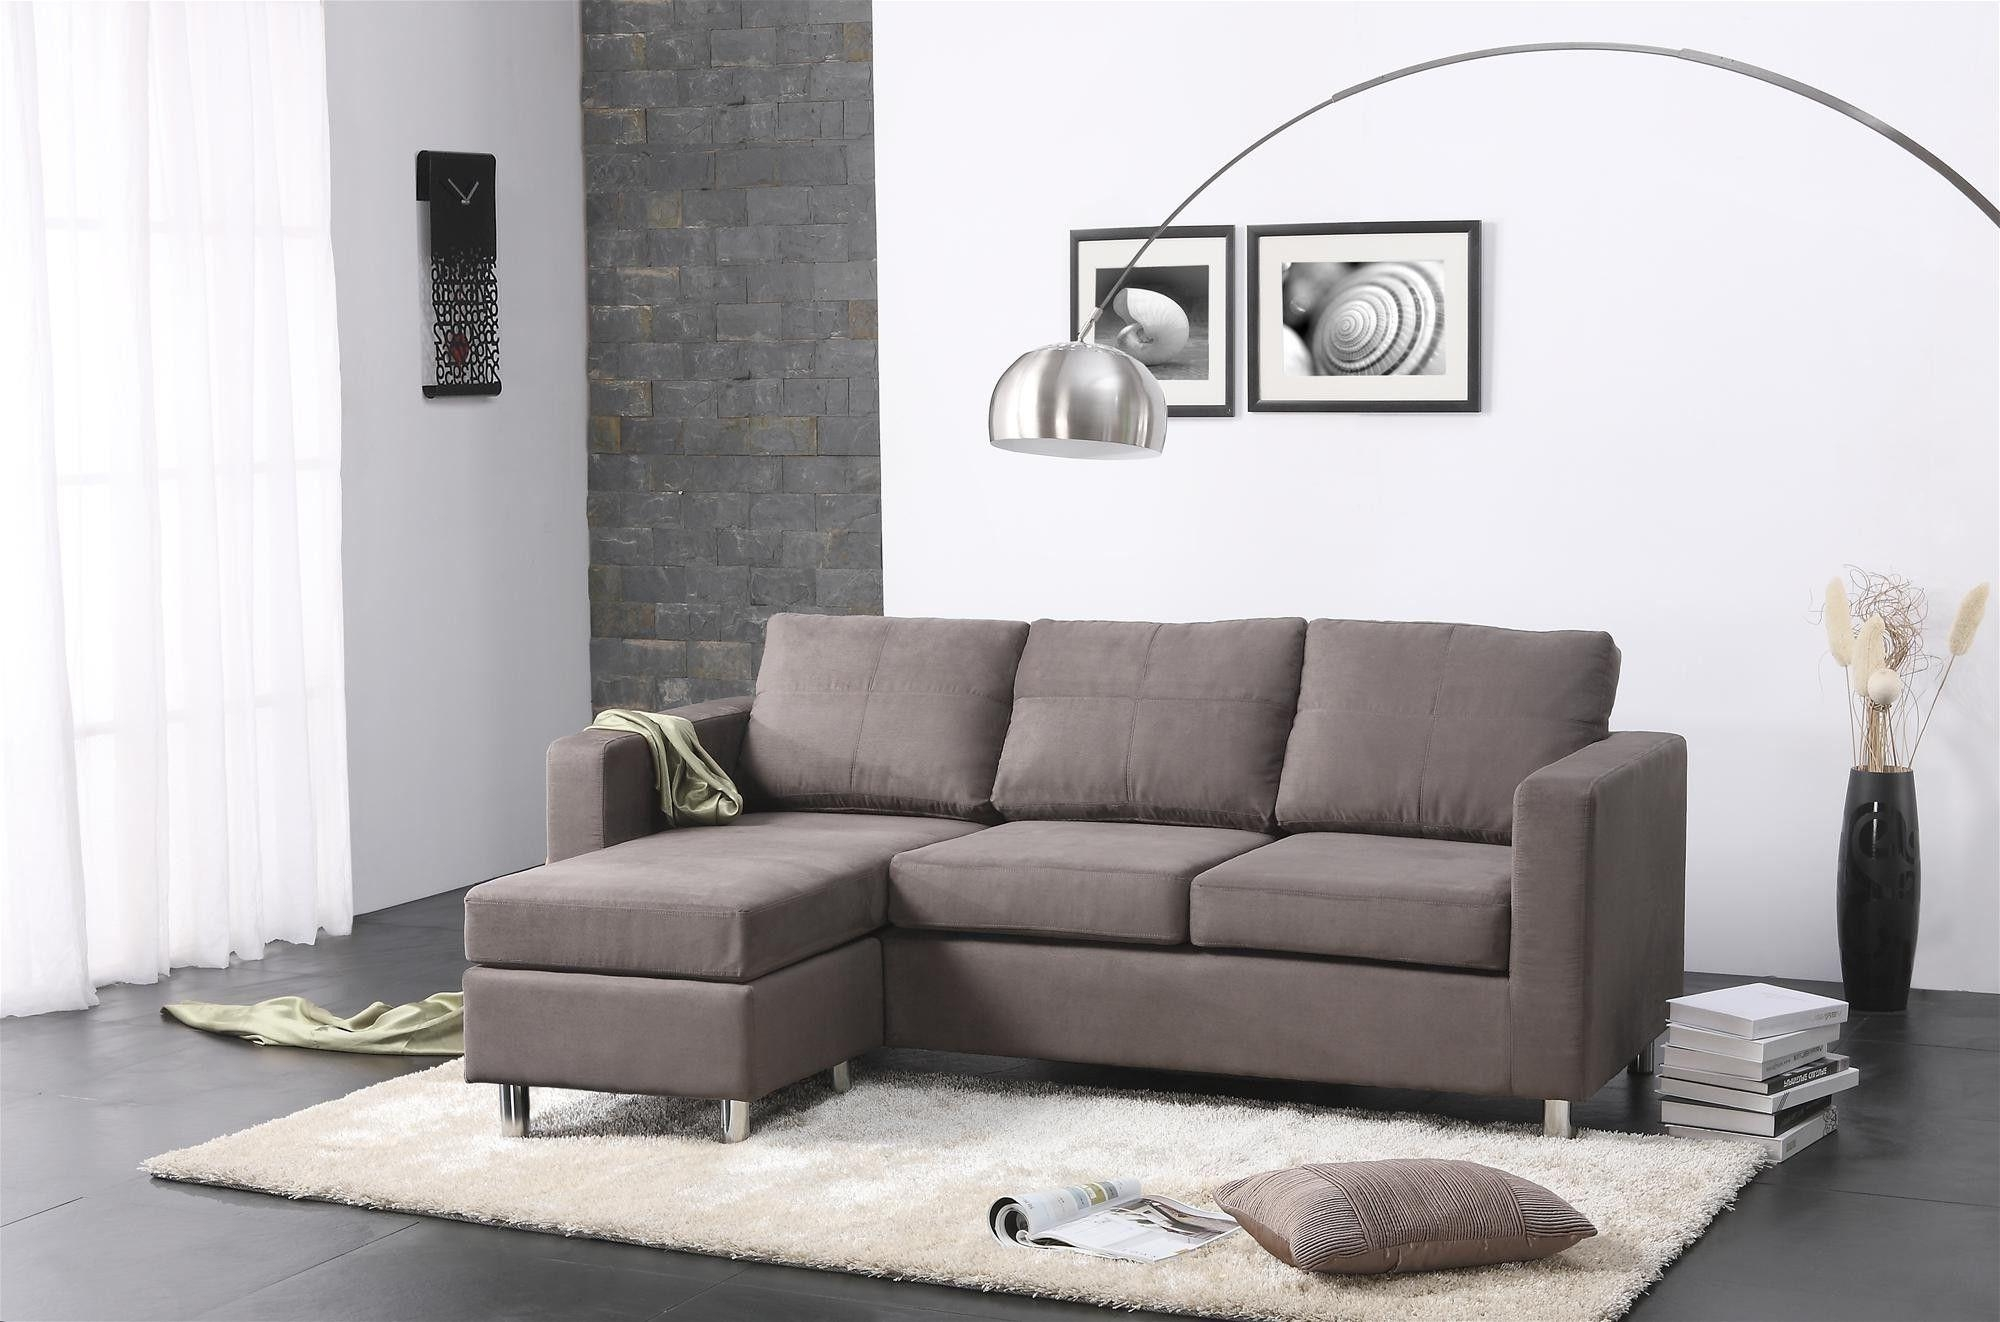 Opulent Ideas Couch For Small Living Room Exquisite Decoration 23 For Modern Sectional Sofas For Small Spaces (Image 15 of 20)